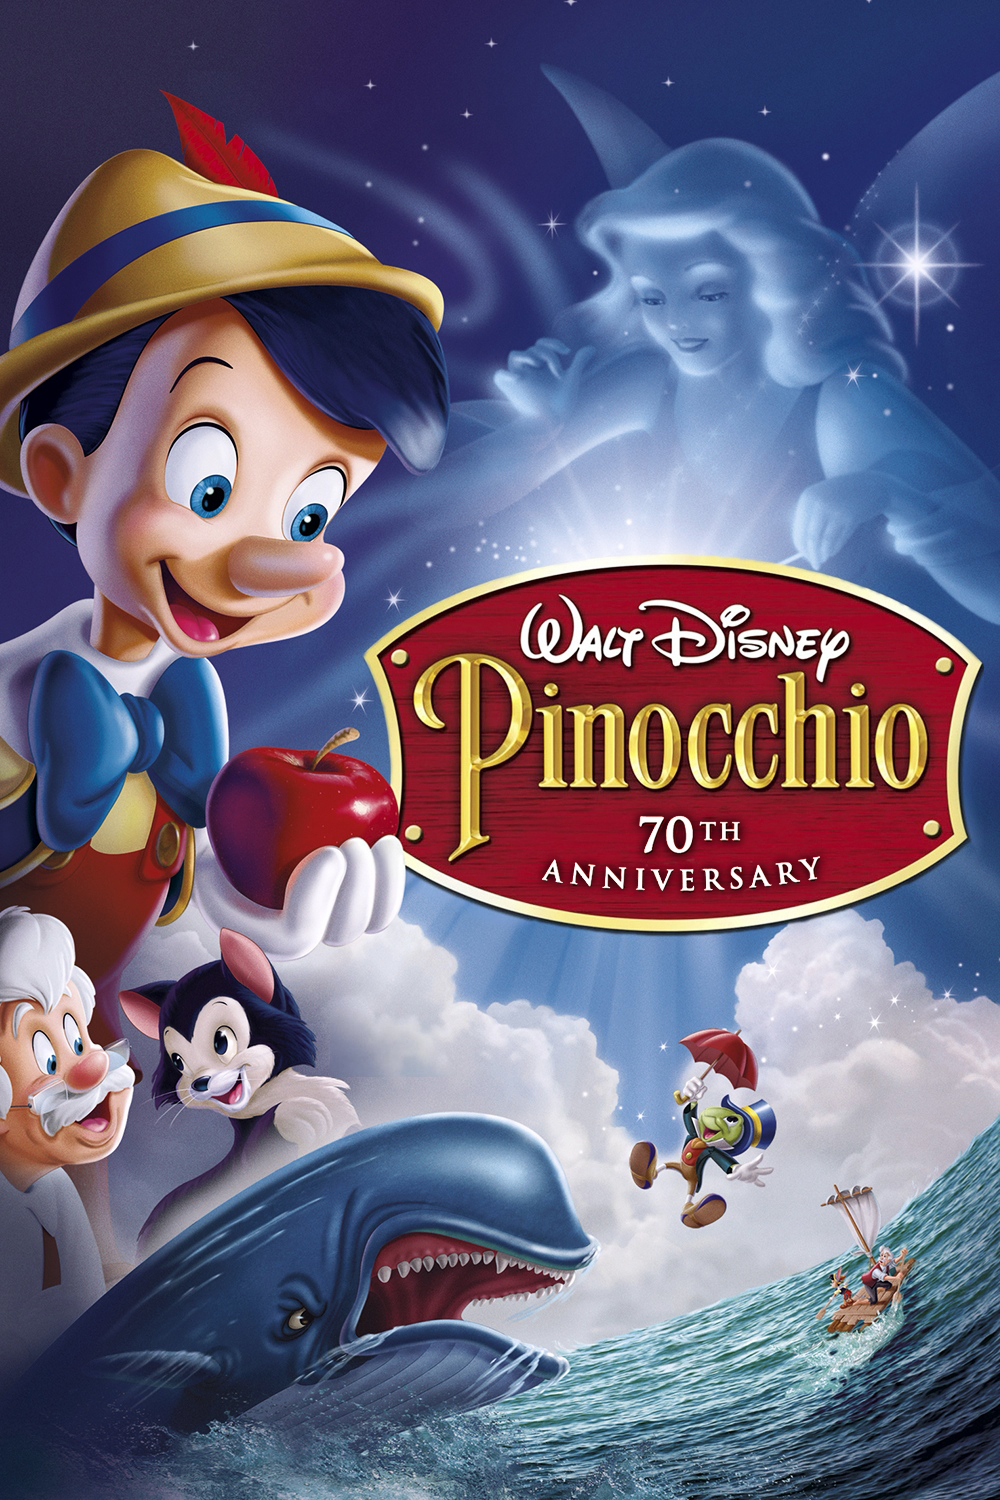 pinocchio-movie-poster.jpg